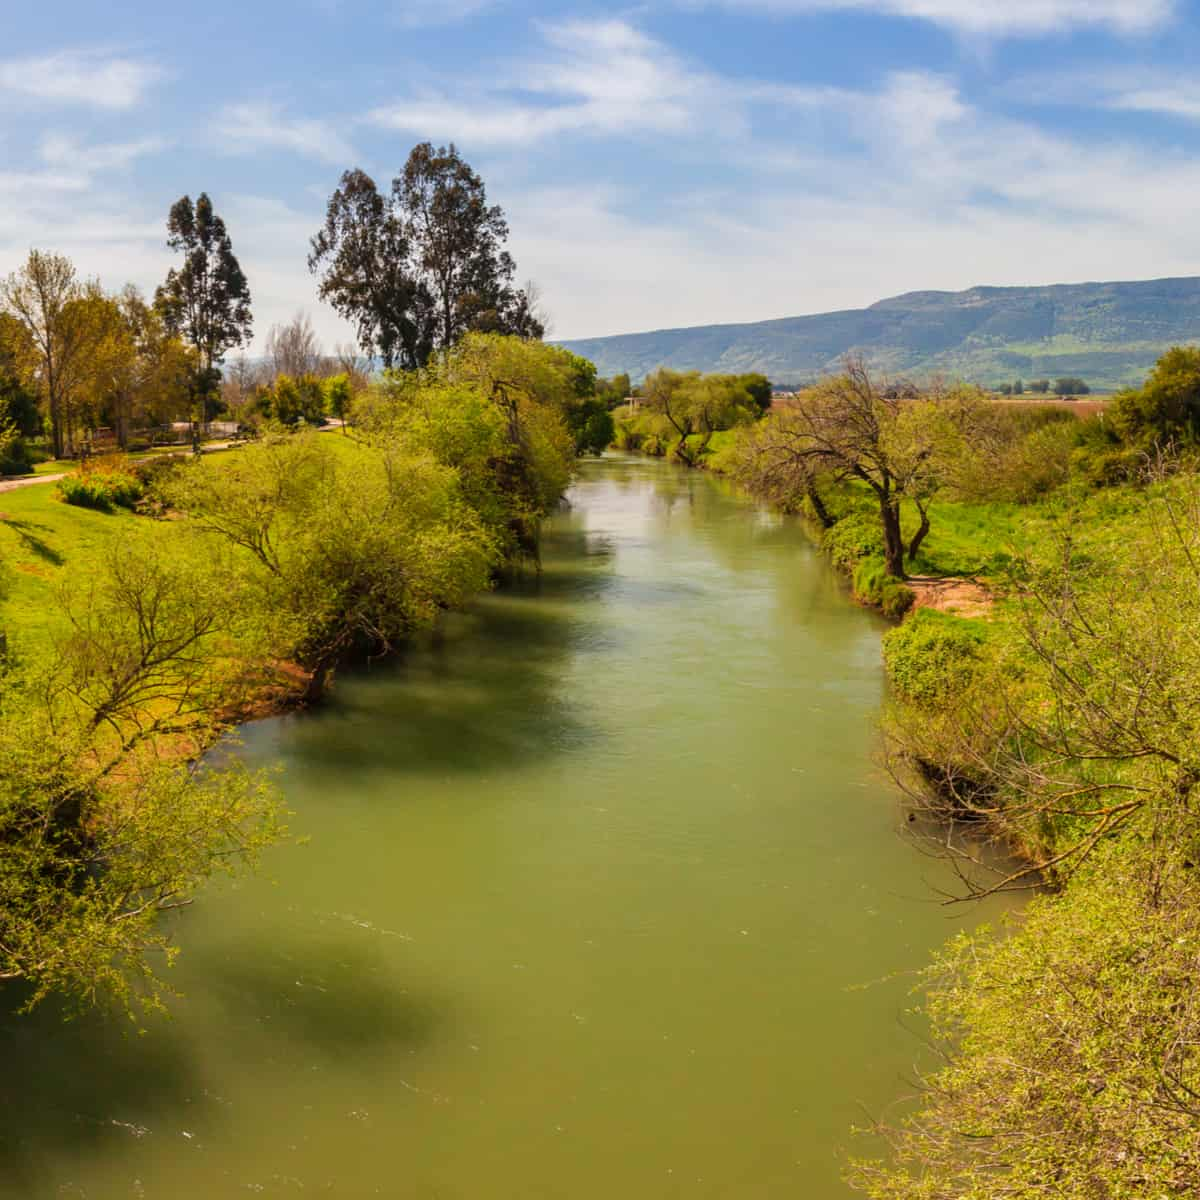 The Jordan Valley: A Significant Historical Site For Christians, Jews & Muslims